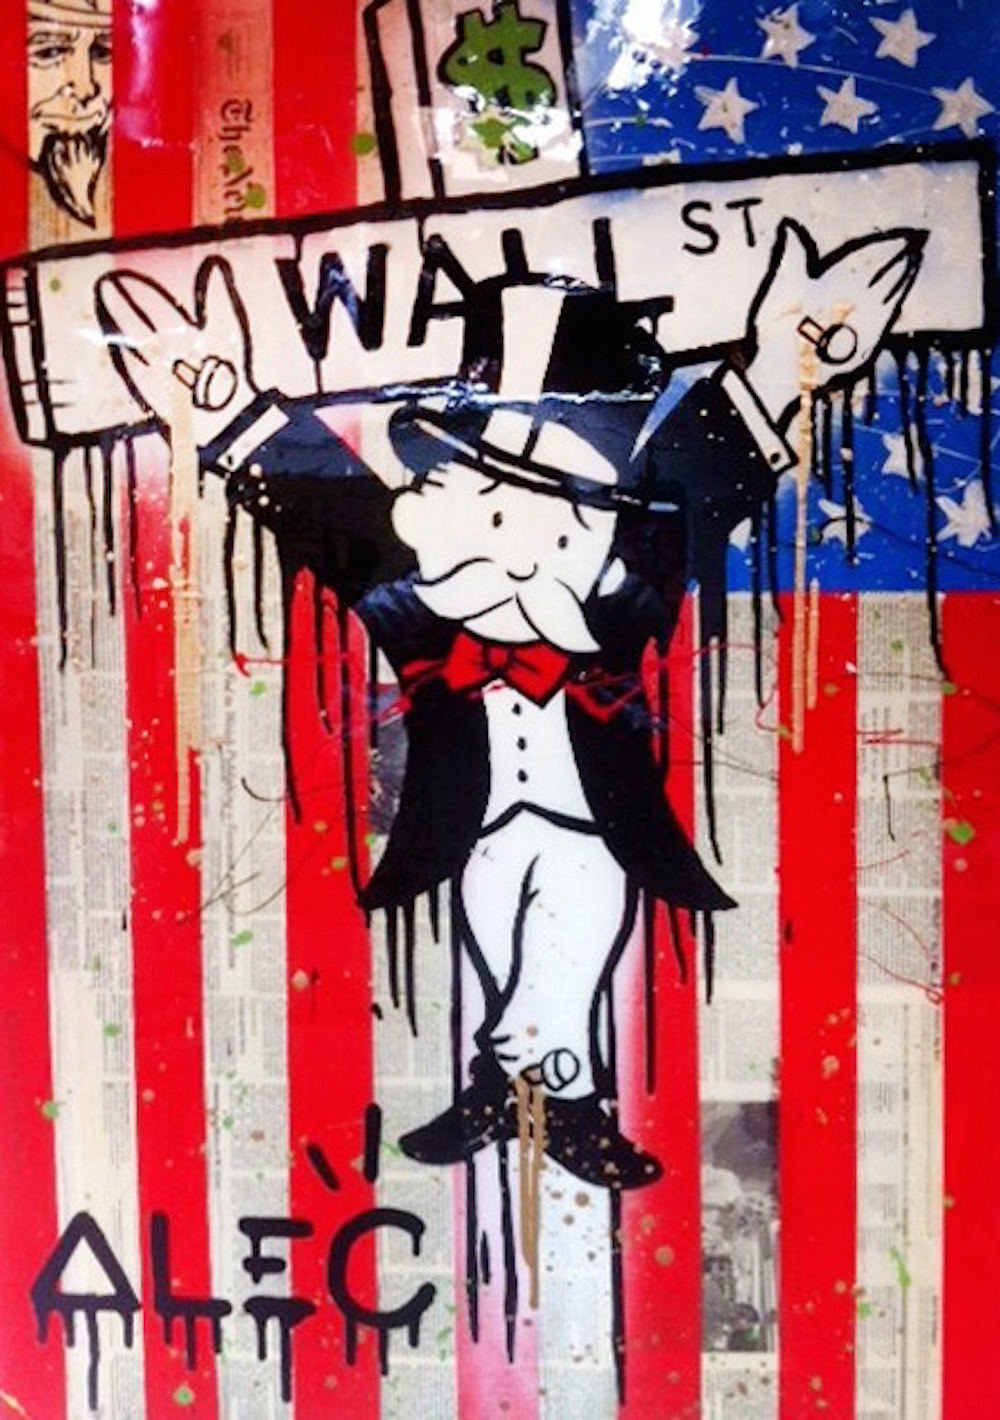 Wall Street Crucifix by Alec Monopoly